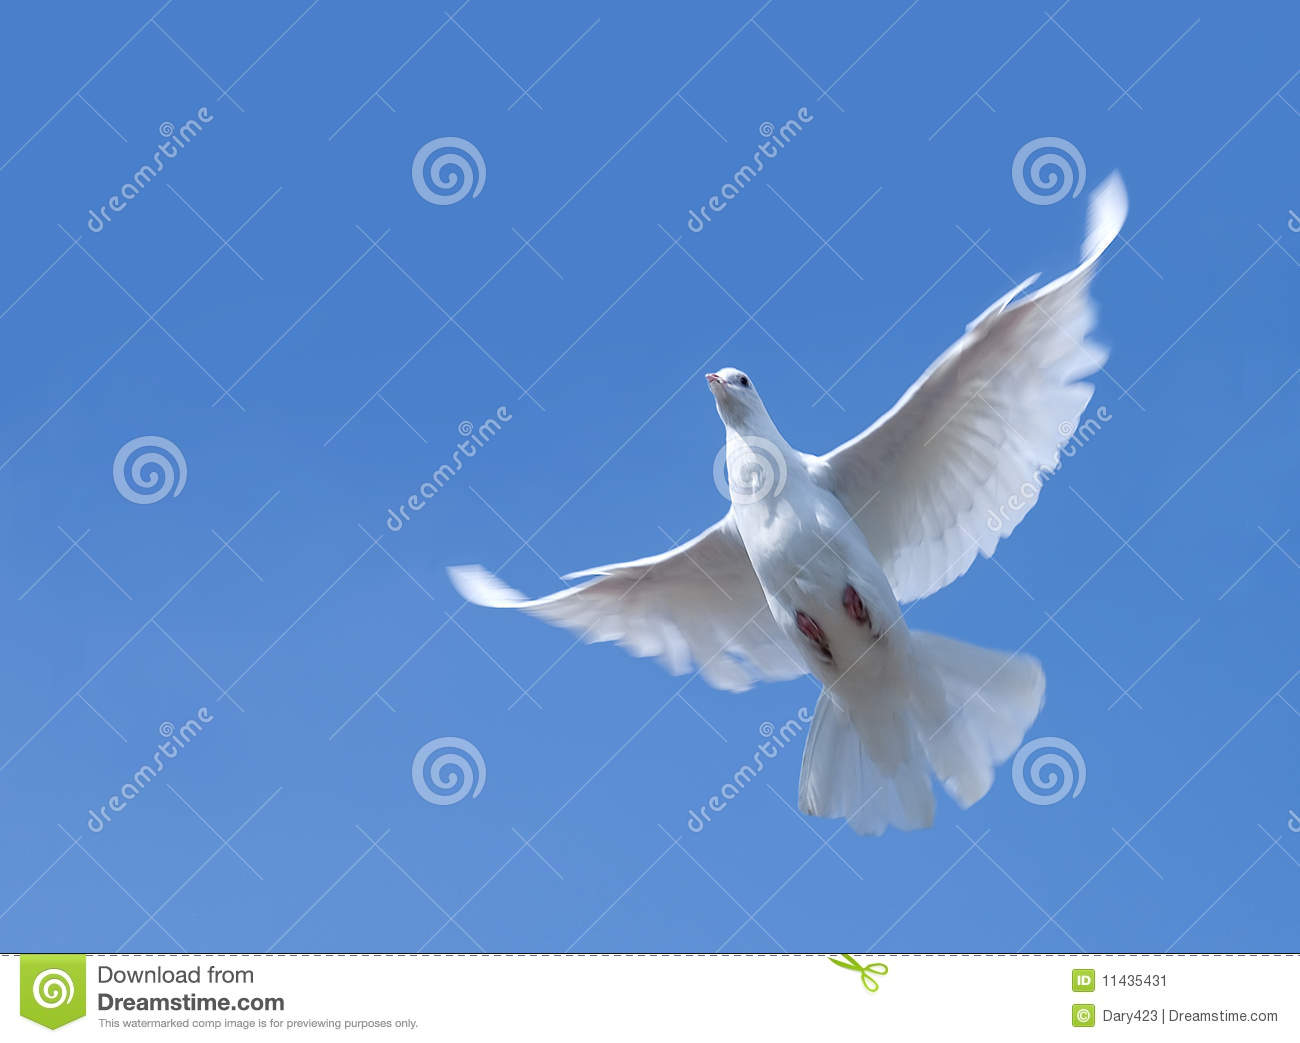 White pigeon flying in the sky